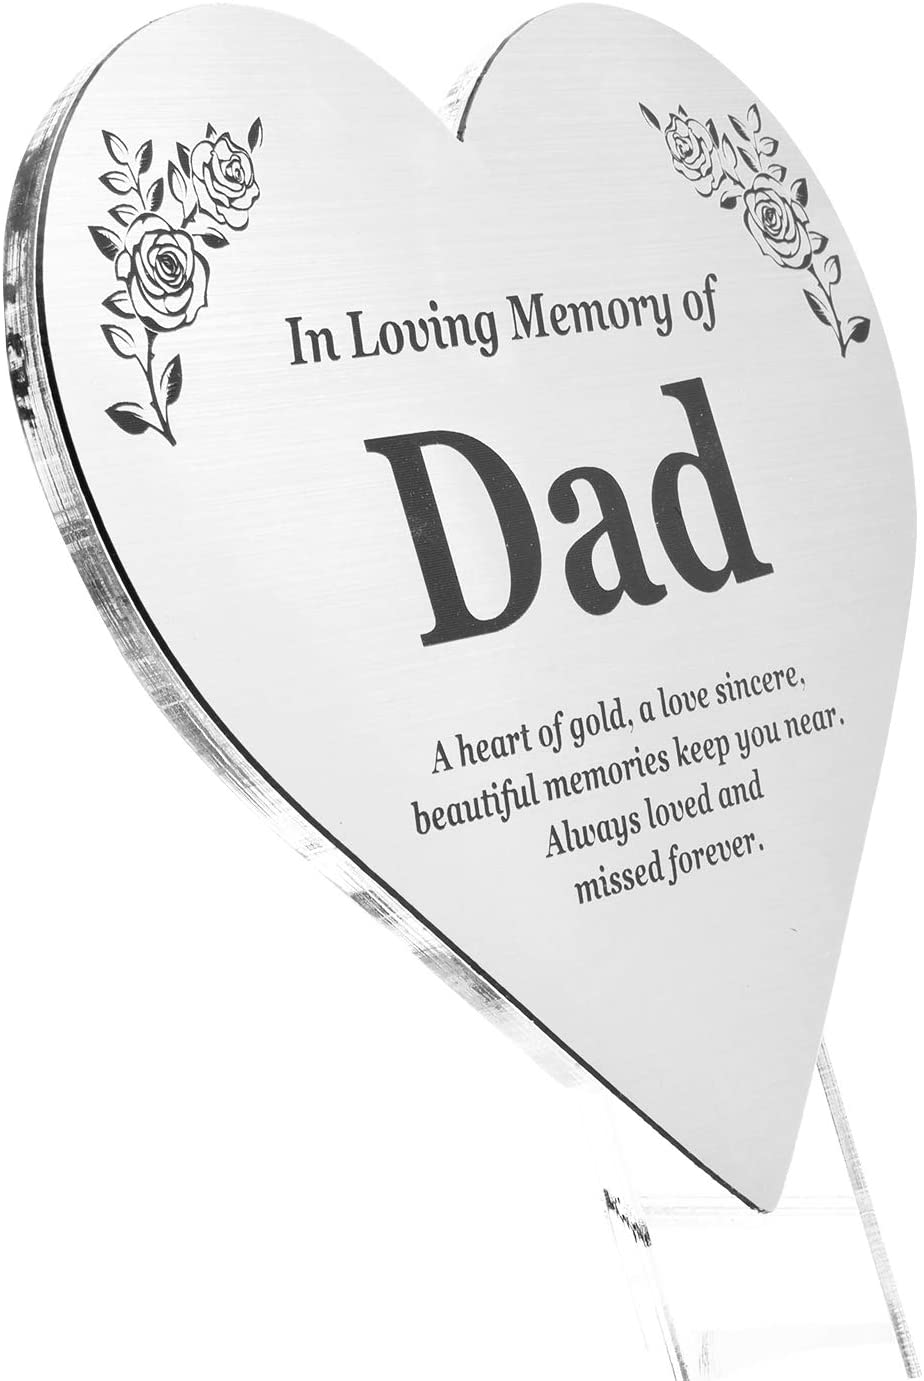 OriginDesigned DAD Floating Heart Memorial Remembrance Plaque Stake - Metallic Silver Acrylic, Waterproof, Outdoor, Grave Marker, Tribute, Plant Marker